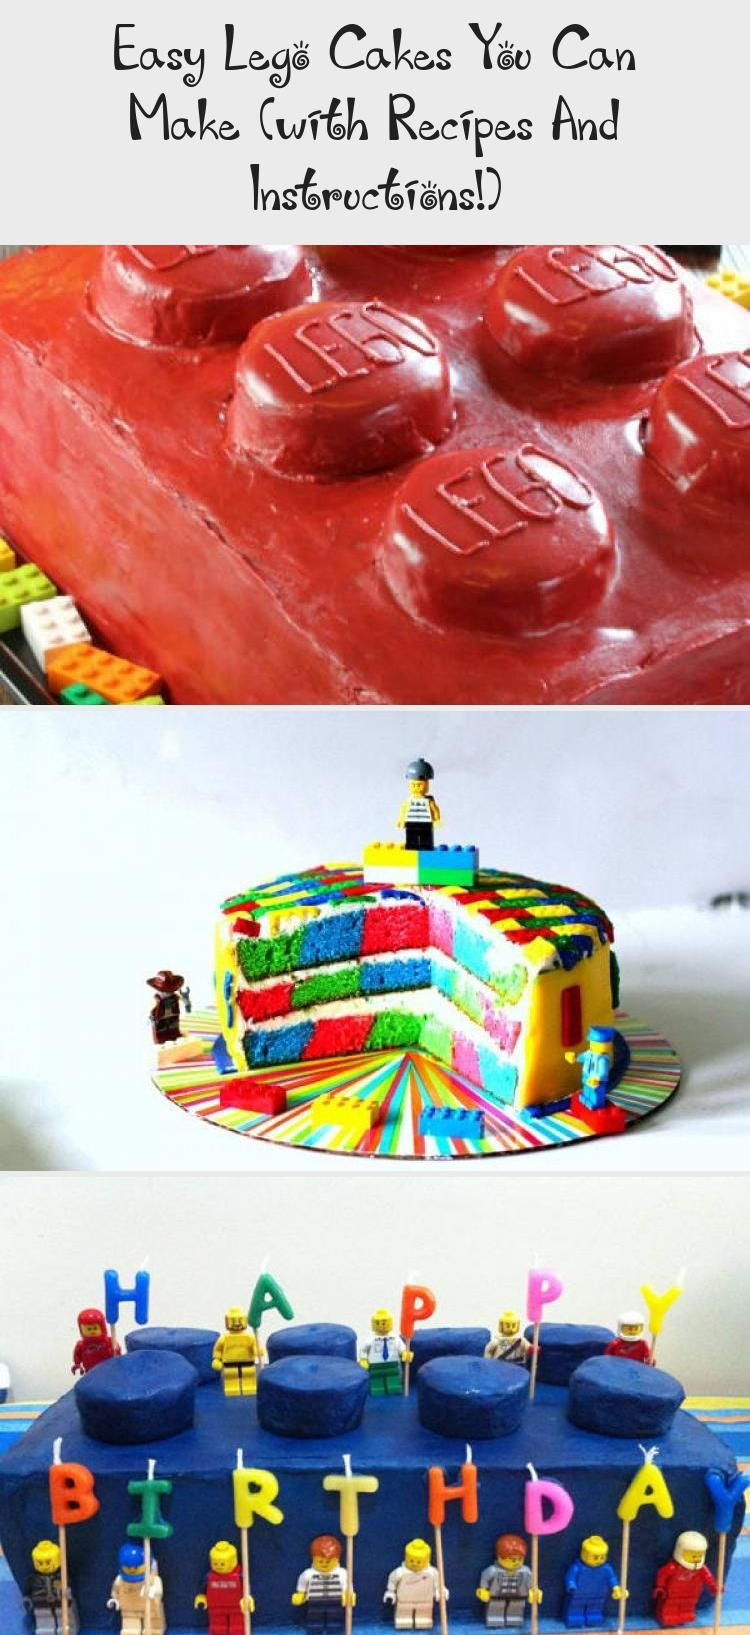 Easy lego cakes ideas you can make these with recipes